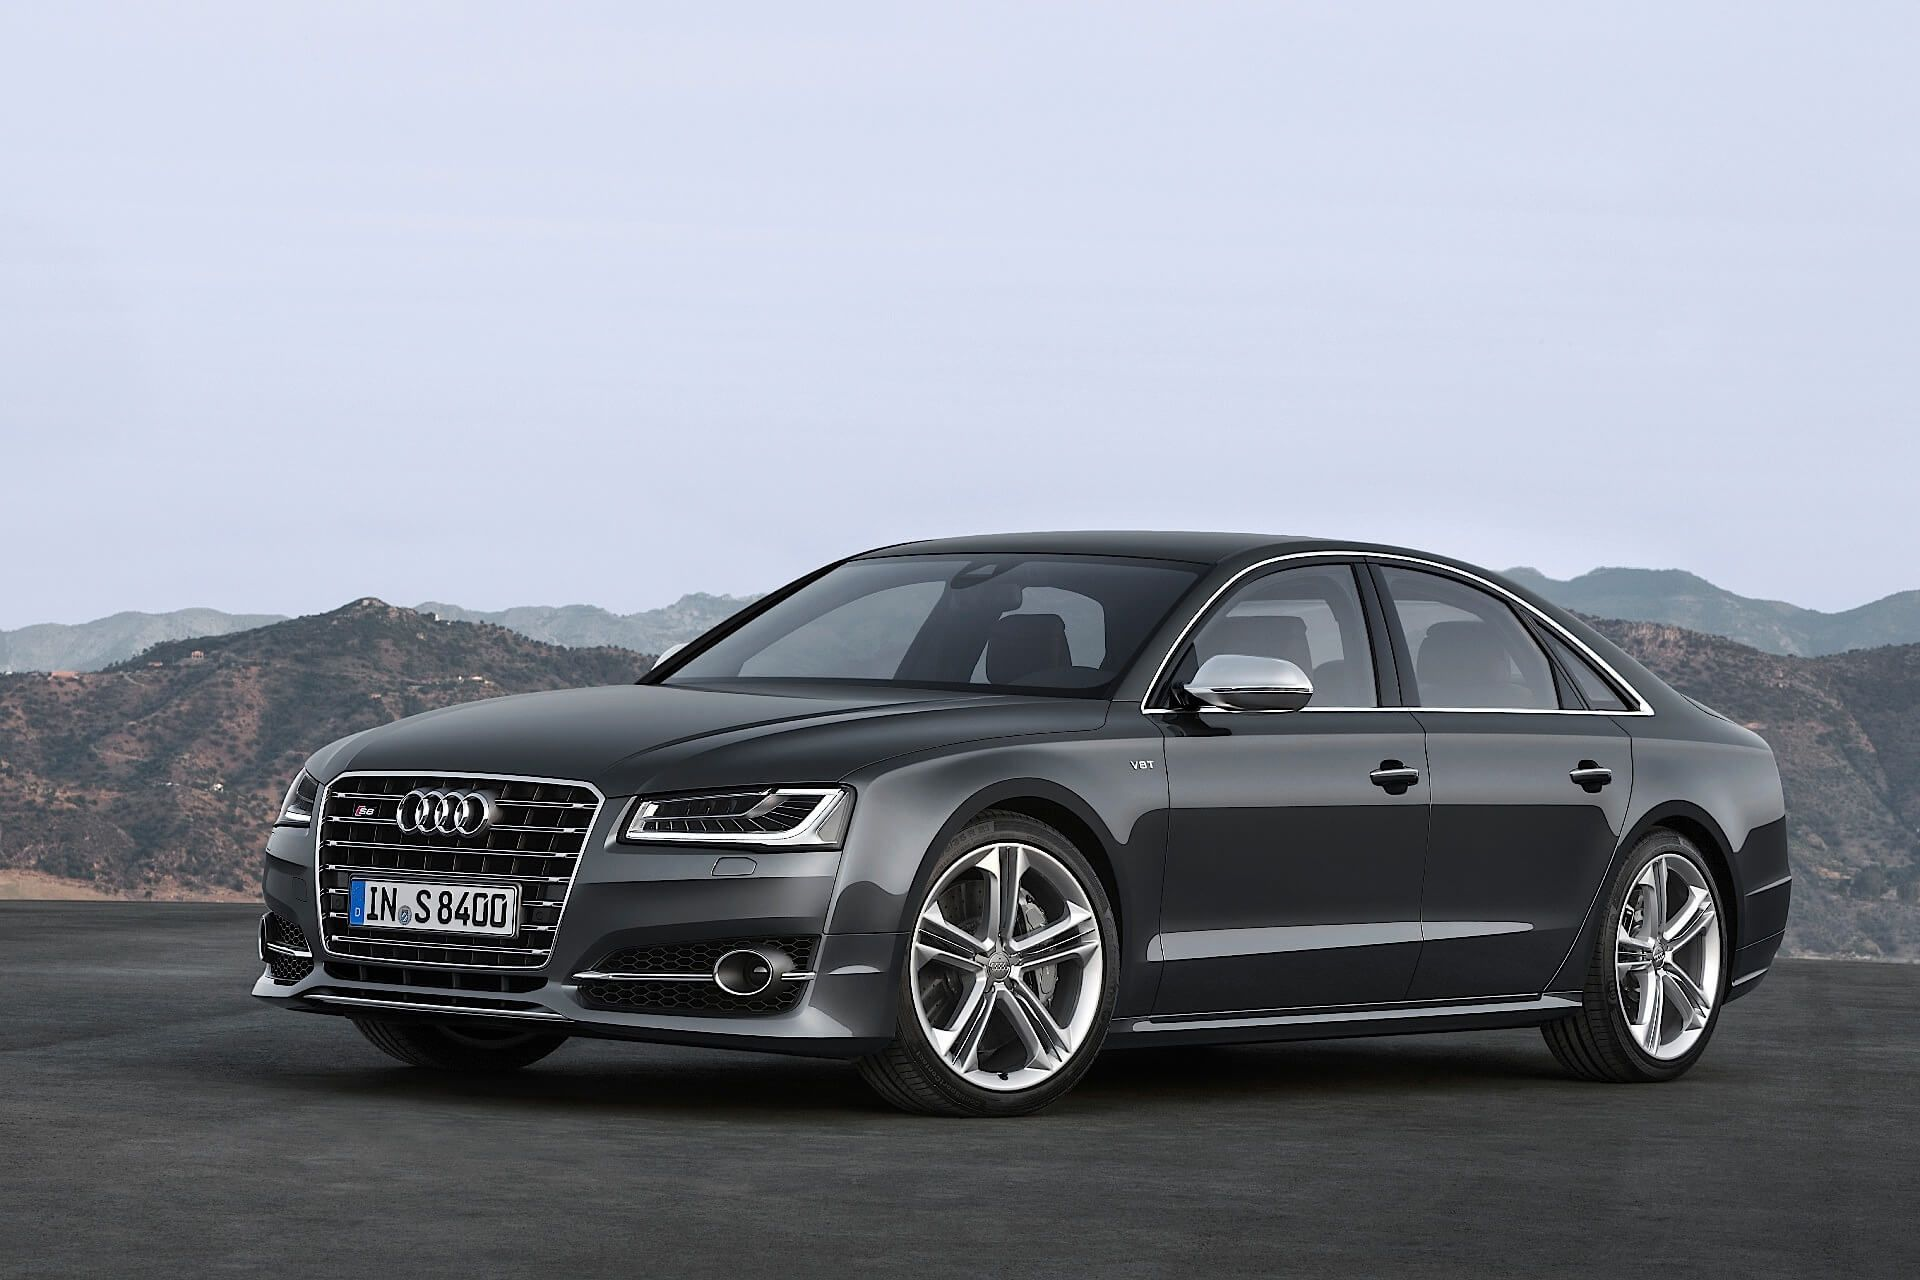 The Audi S8 plus provides the perfect balance between the potent